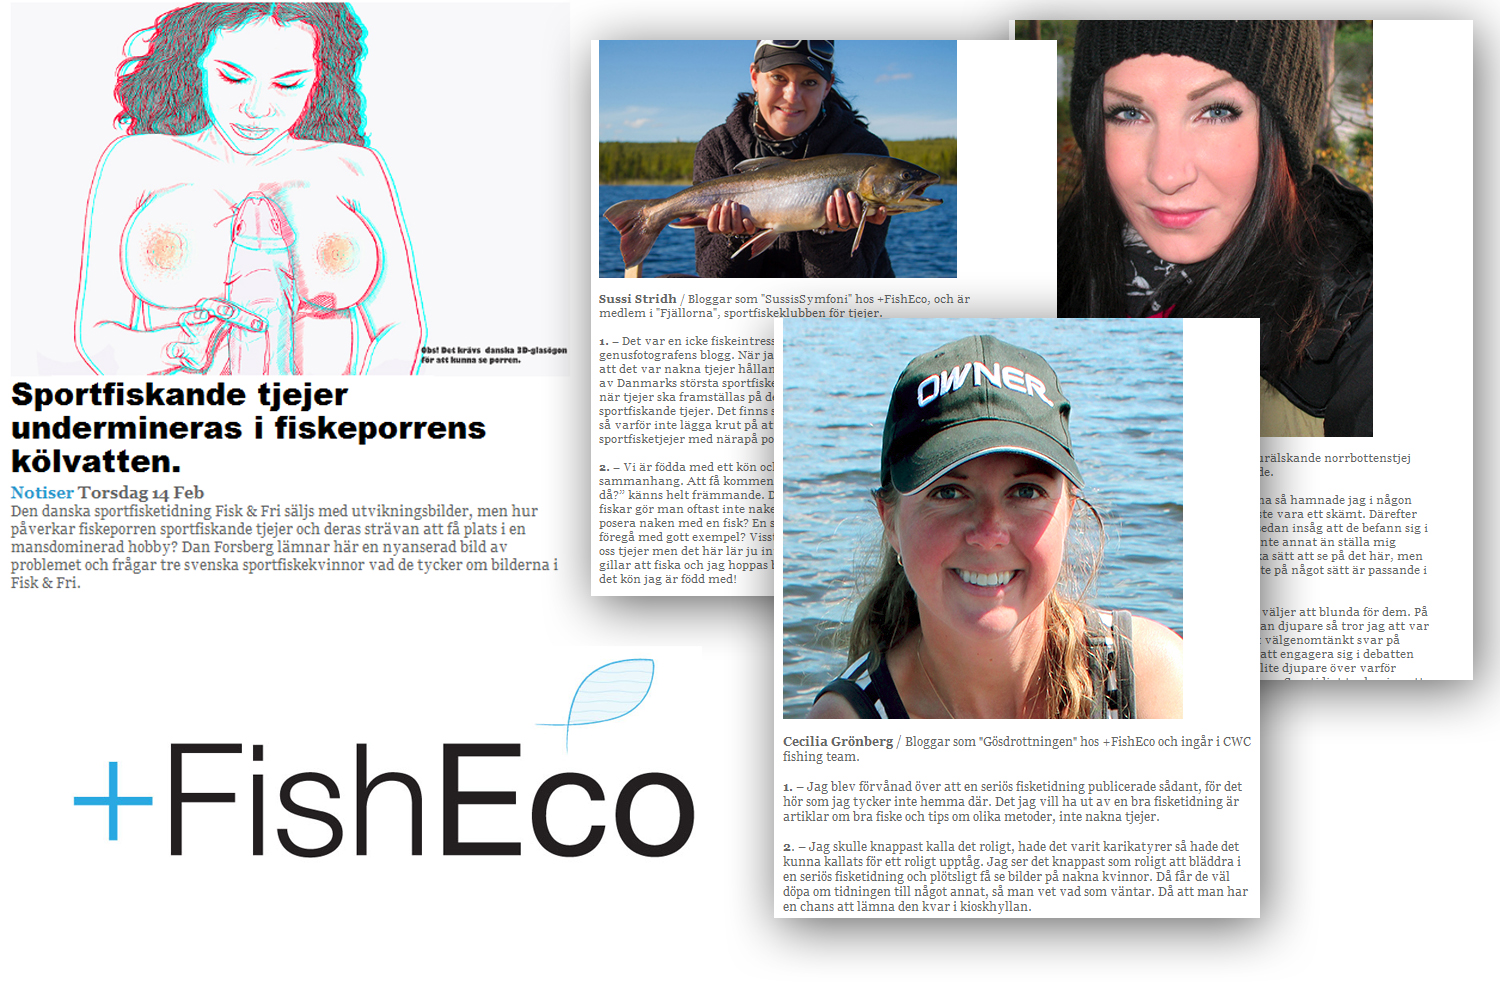 Therese Lundin - Fisheco